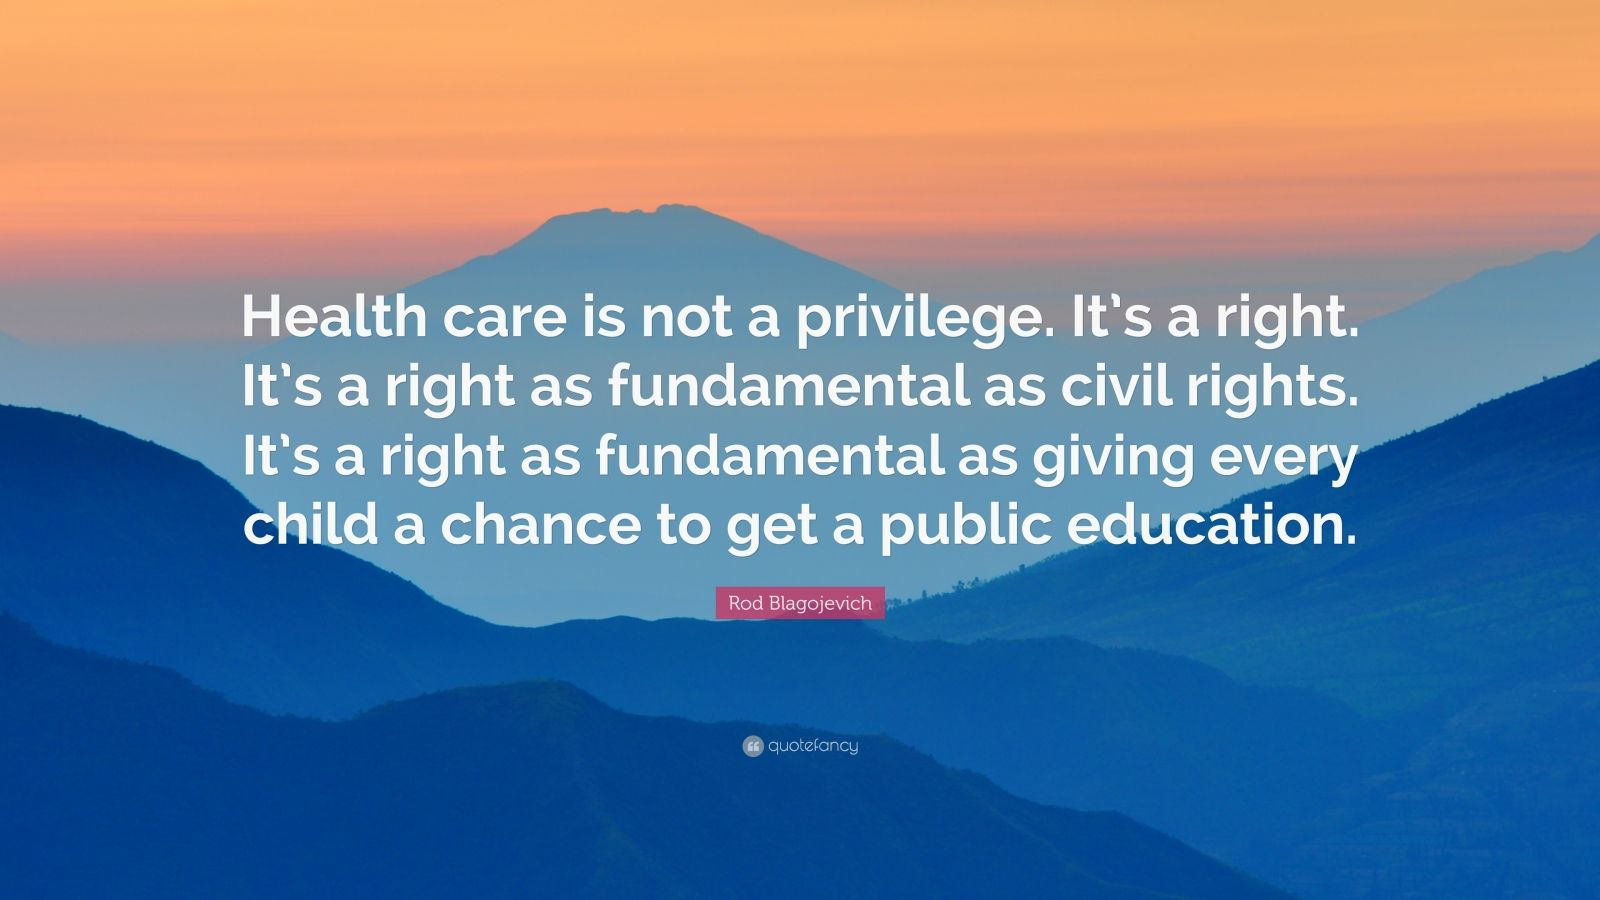 health care issues right or privilege Is health care a right or privilege  this raises even more ethical issues around whether free nhs treatment should be given to people with what are perceived.